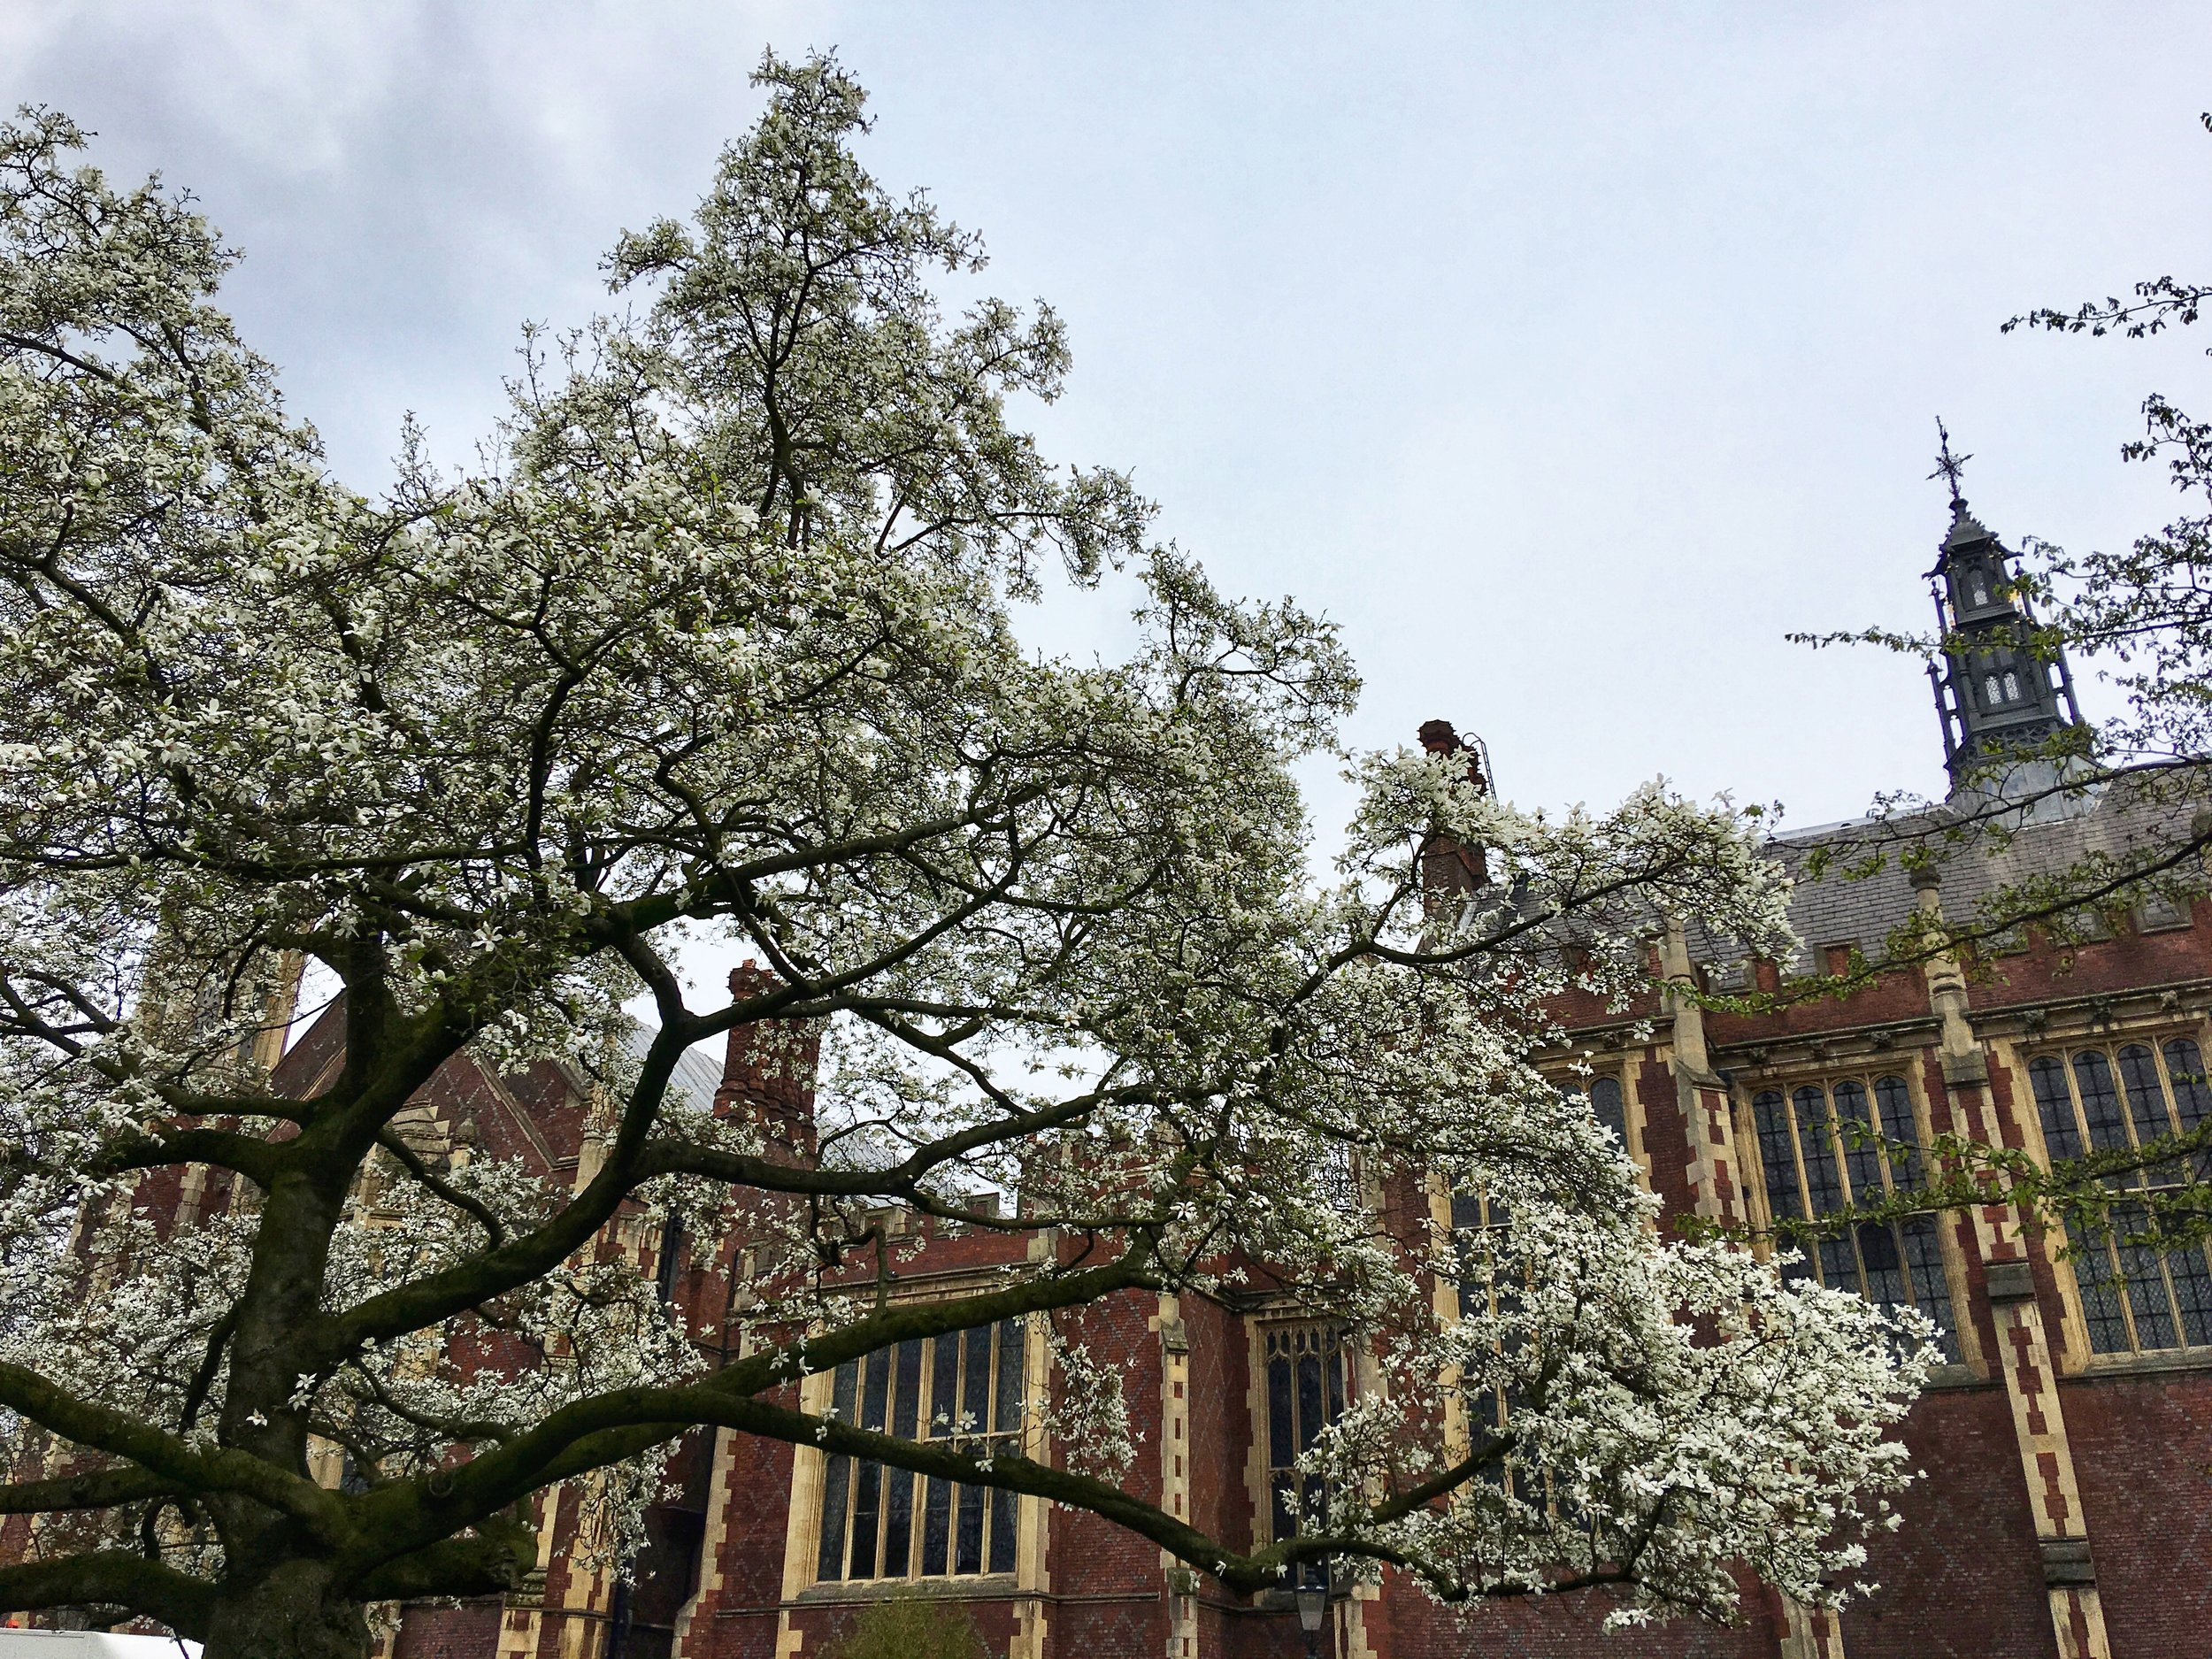 Blossoms at Lincoln Inn Fields